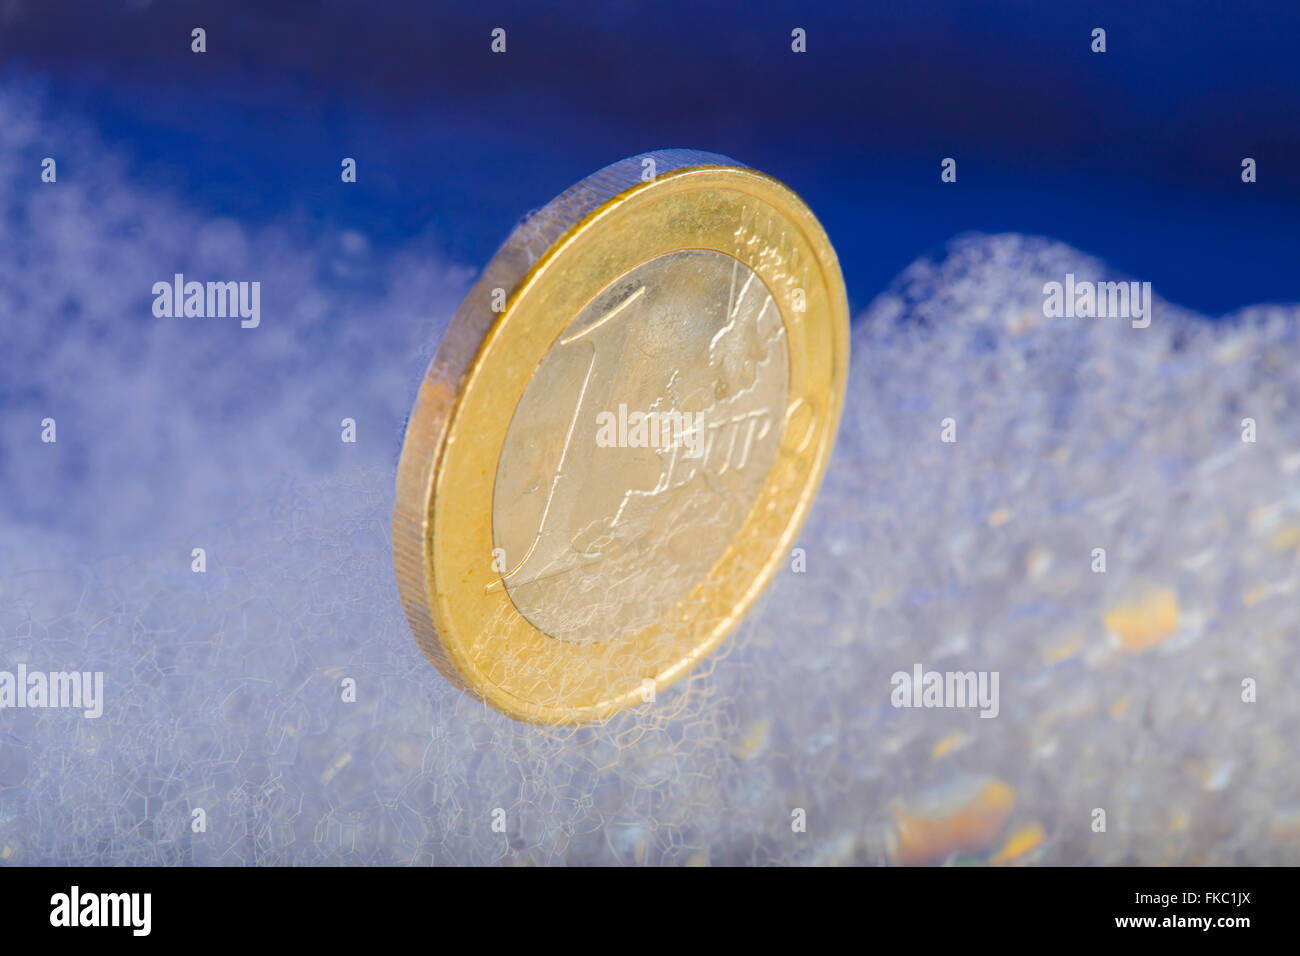 economic recovery of the euro currency and refloating the economy - Stock Image